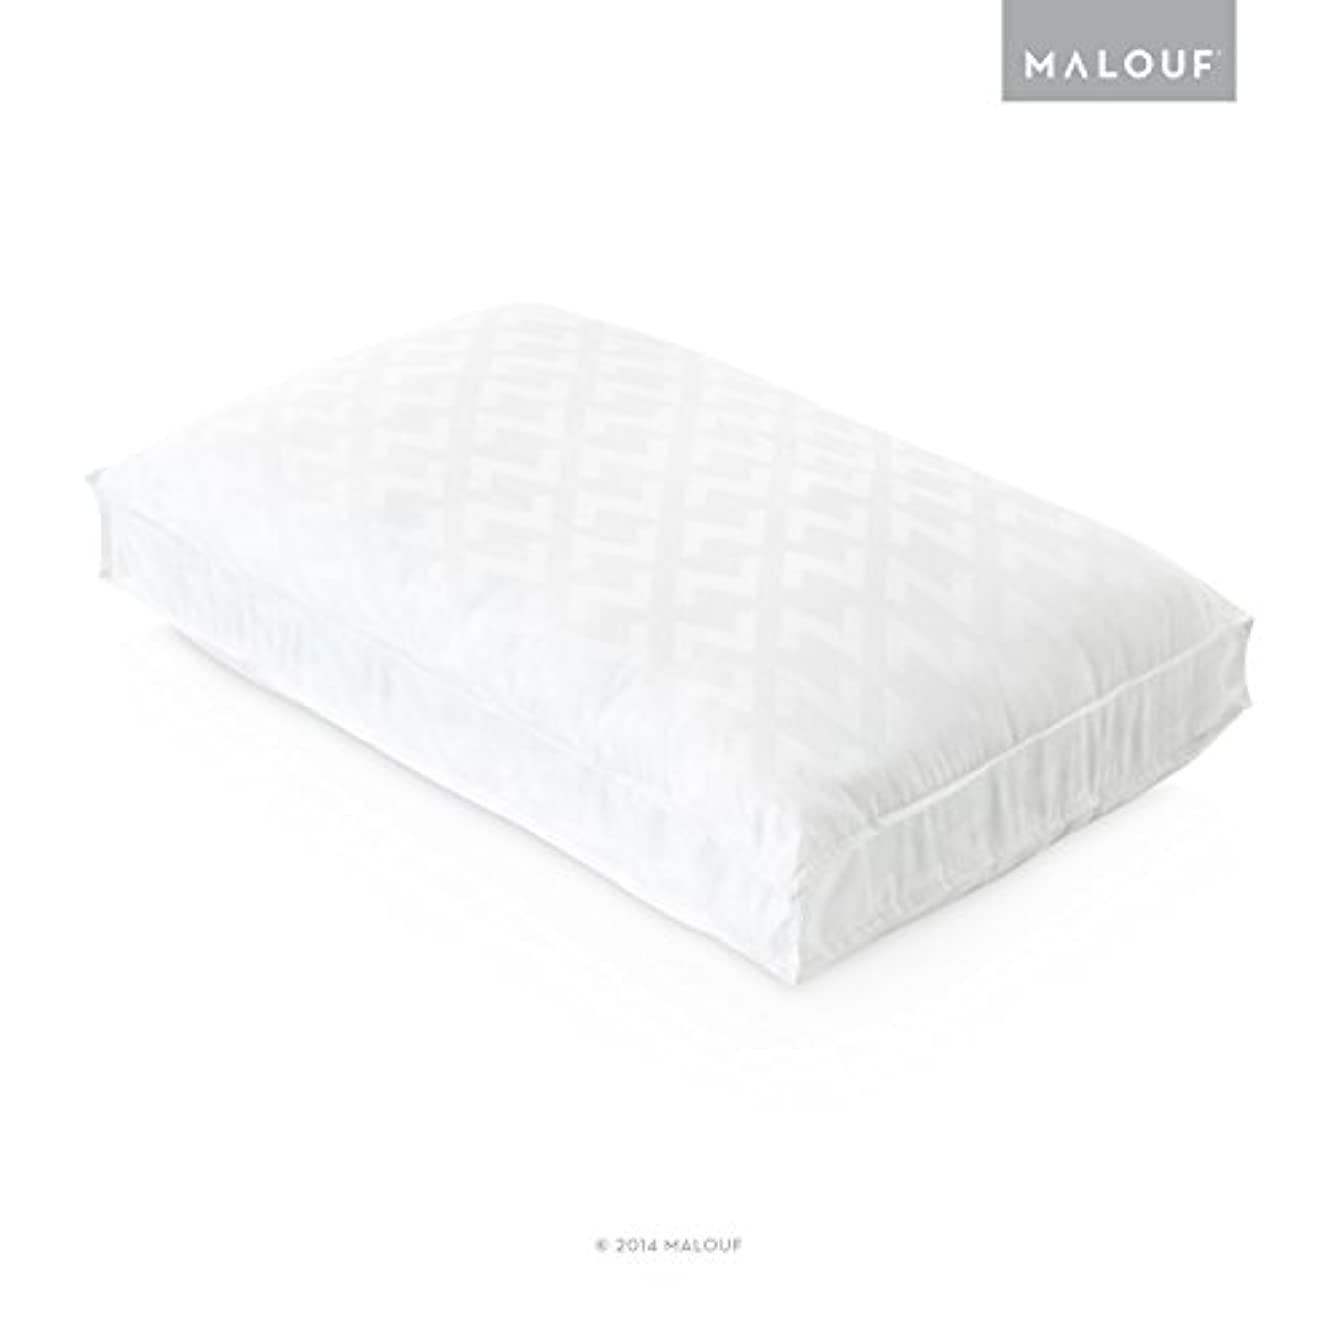 Z Convolution Pillow - Gel-Infused Dough Memory Foam Core with Gelled Microfiber Fill - 3 Levels of Support - 3-Year Warranty - Queen - Low Loft